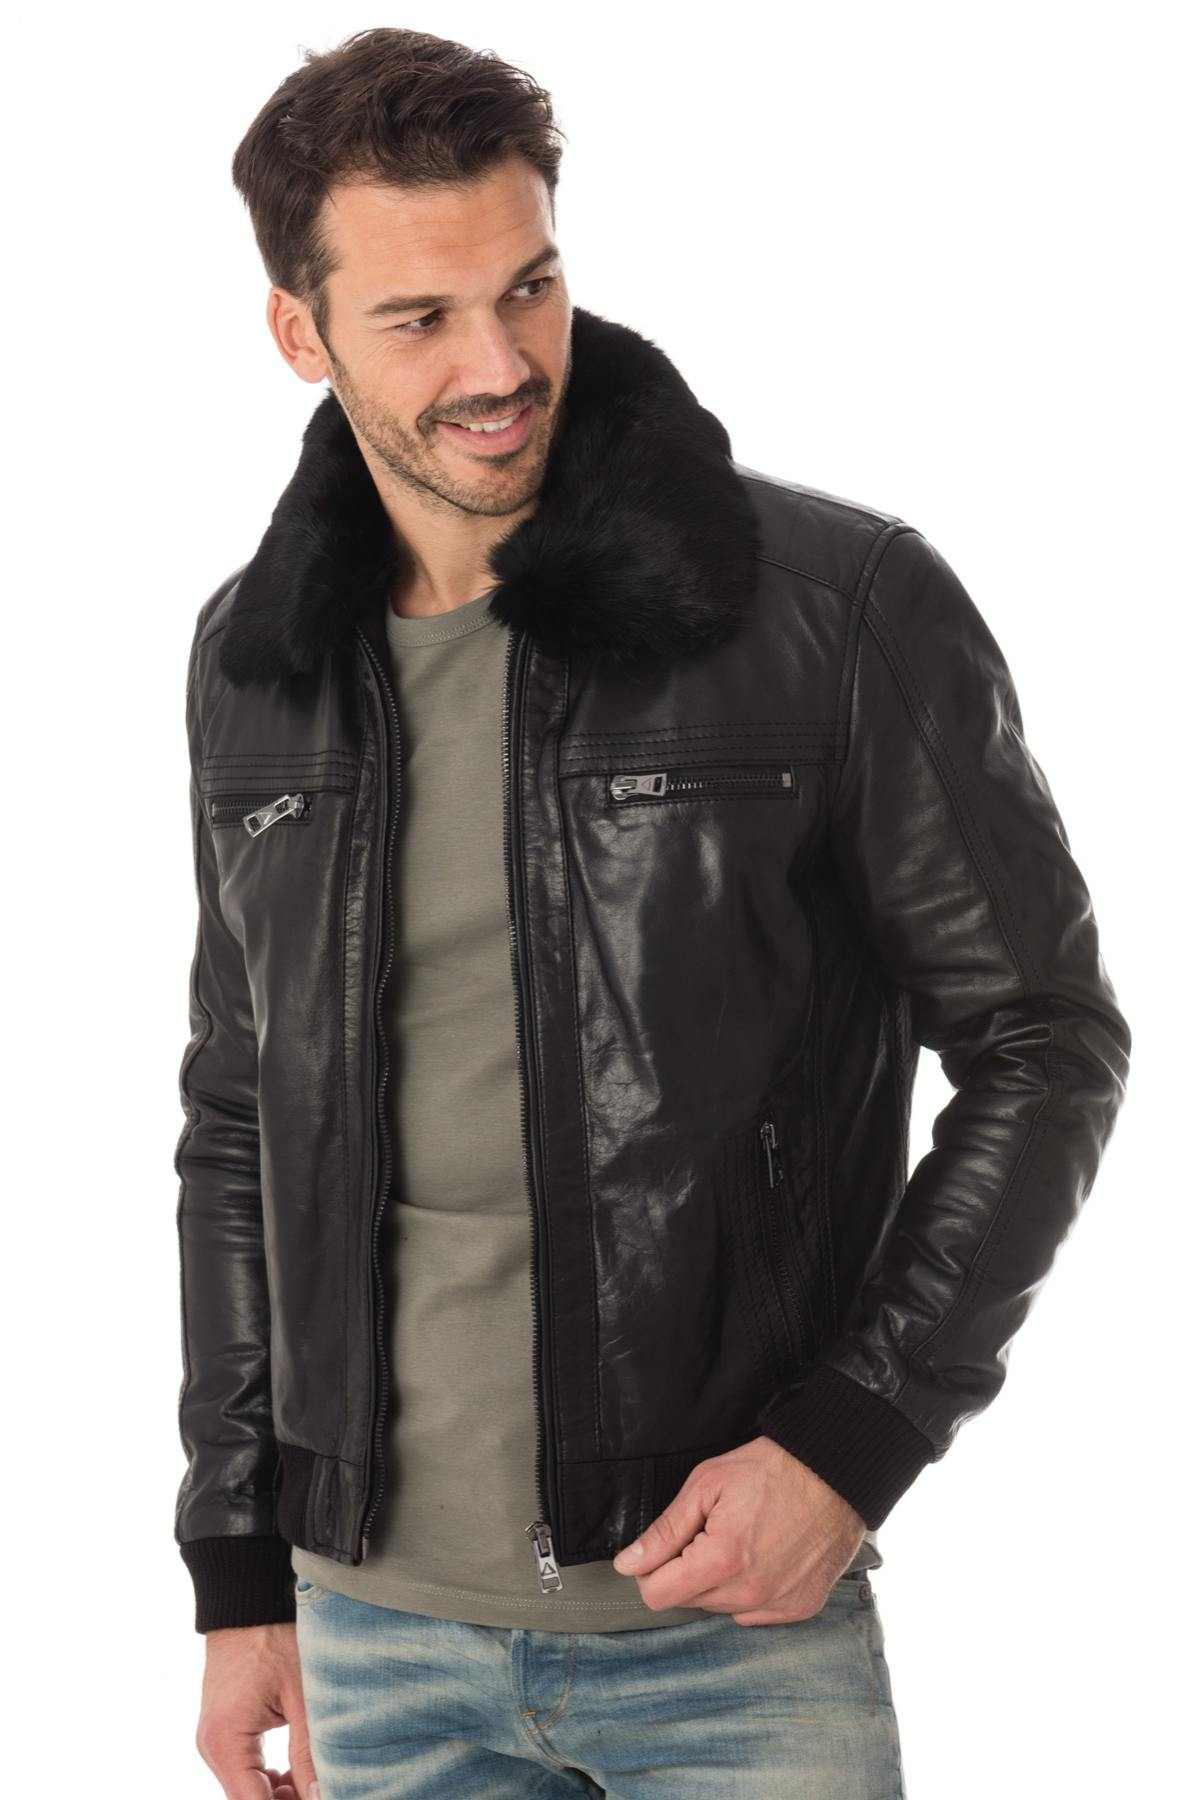 blouson homme col fourrure blouson homme noir avec col. Black Bedroom Furniture Sets. Home Design Ideas